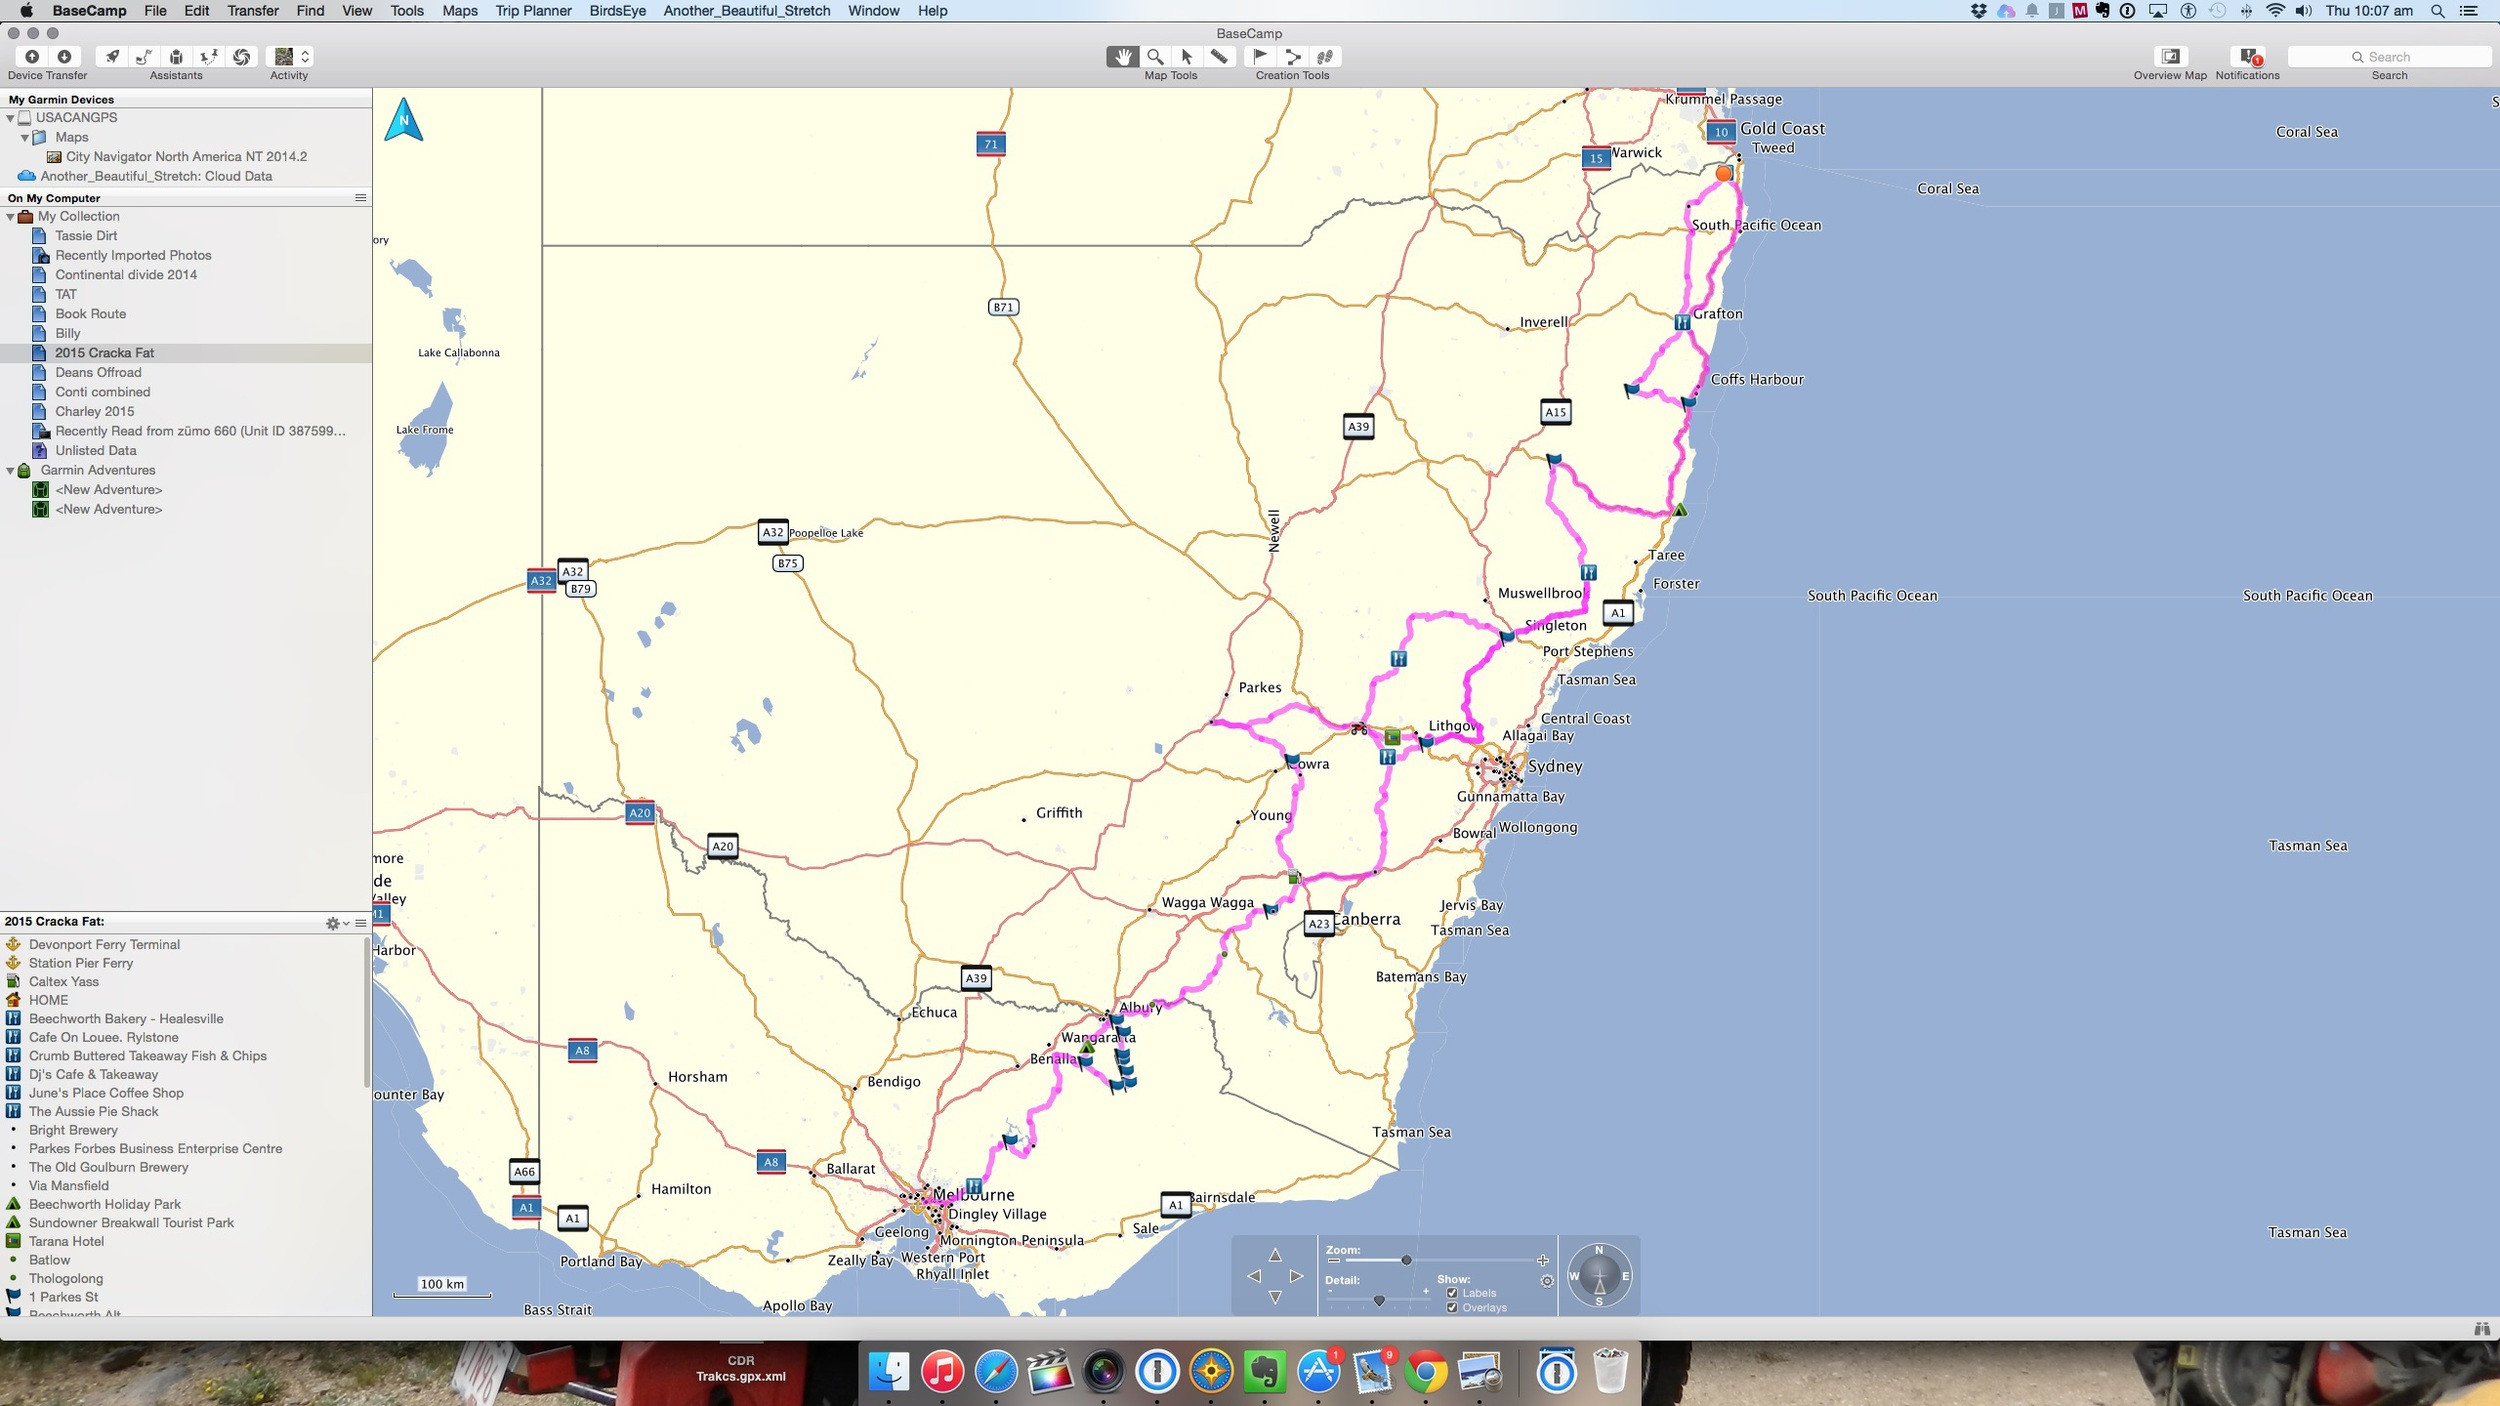 The route as planned. Subject to many changes.